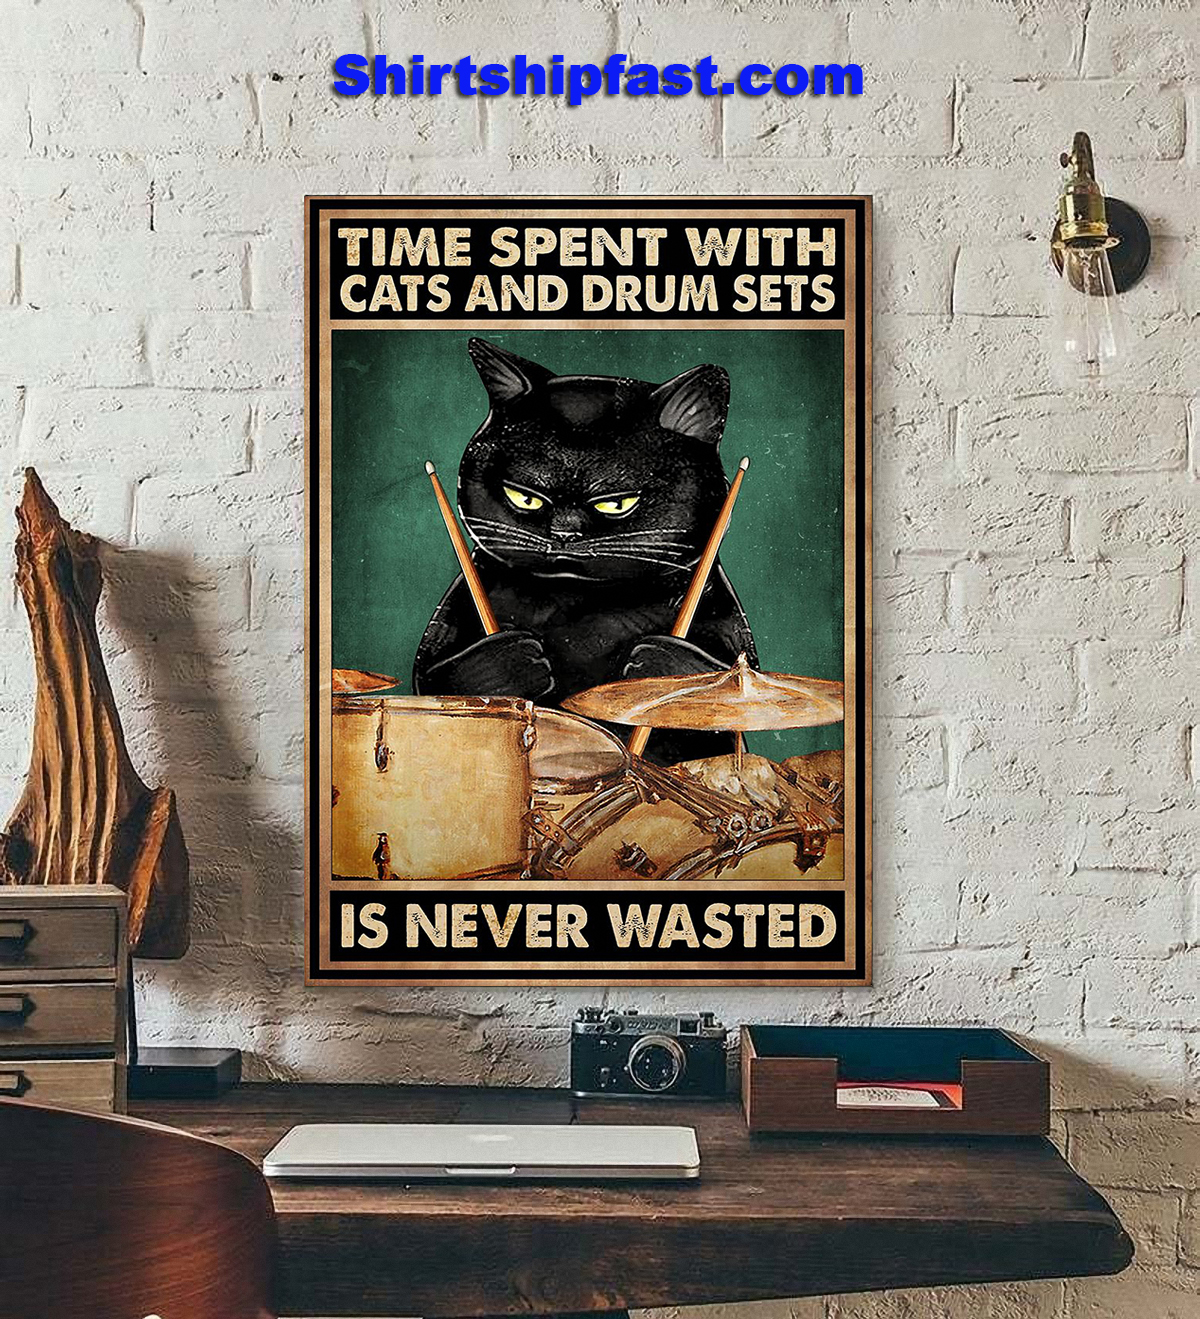 Time spent with cats and drum sets is never wasted poster - Picture 3